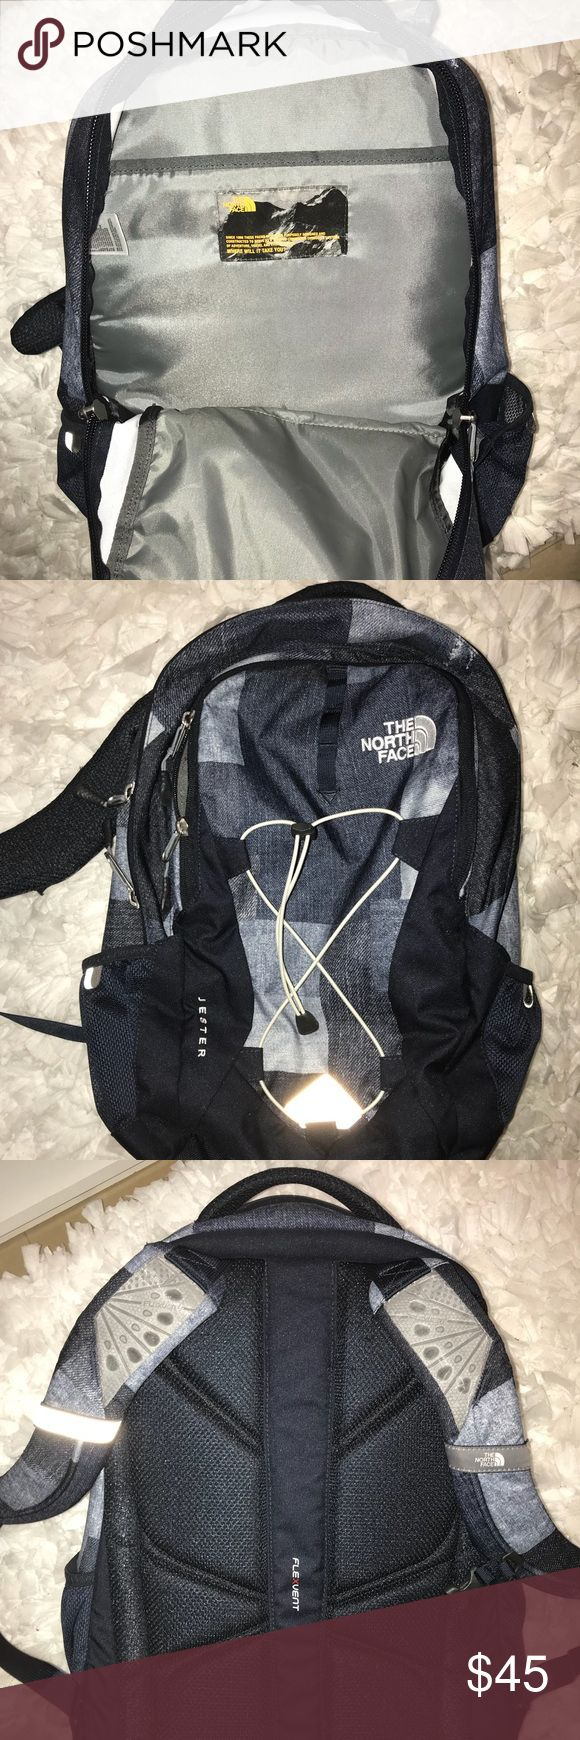 North Face Backpack Brand new! Used twice and I'm perfect condition. I just decided I wanted to use my old backpack. Navy blue/denim colors. North Face Bags Backpacks